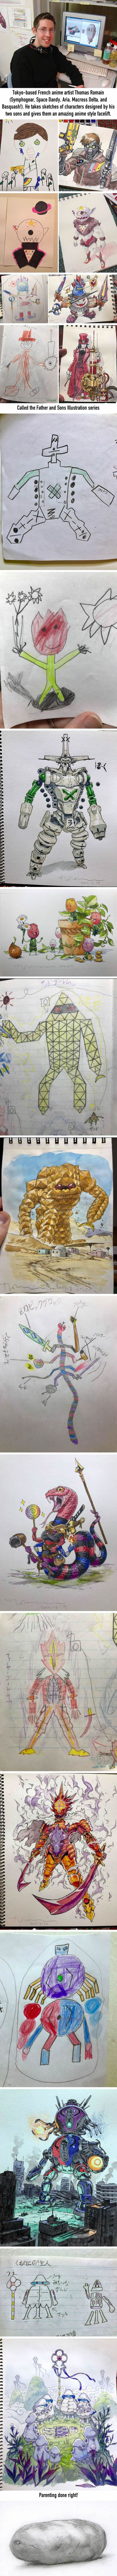 Professional anime artist turns his sons' sketches into amazing anime characters again This is one of the best things I've ever seen lovely man